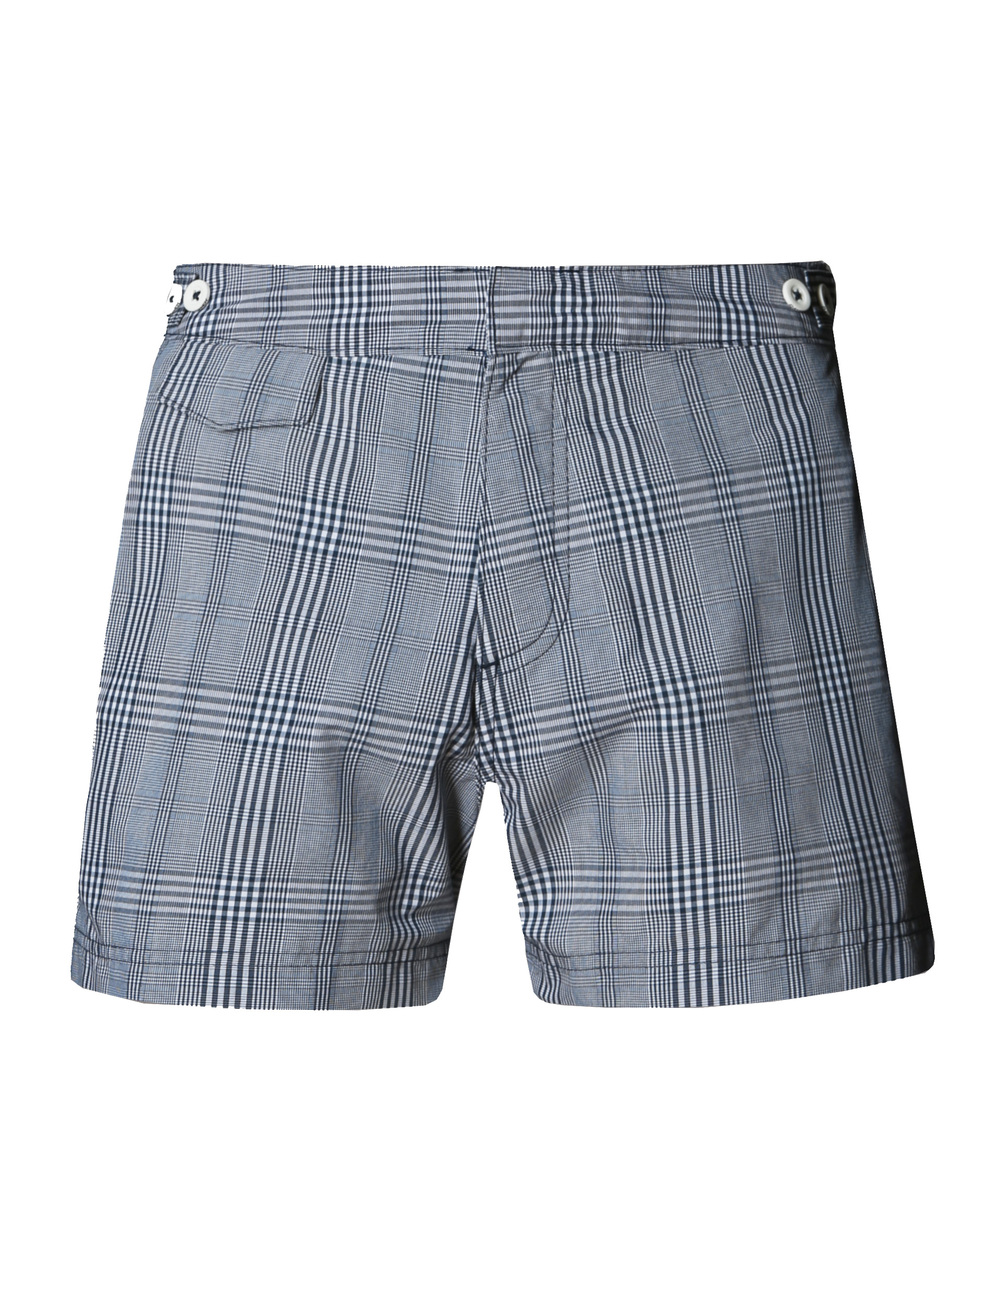 David Gandy for Autograph Tailored Fit Quick Dry Swim Shorts T28 7906A -ú29.50 POW Check Mid Length.jpg